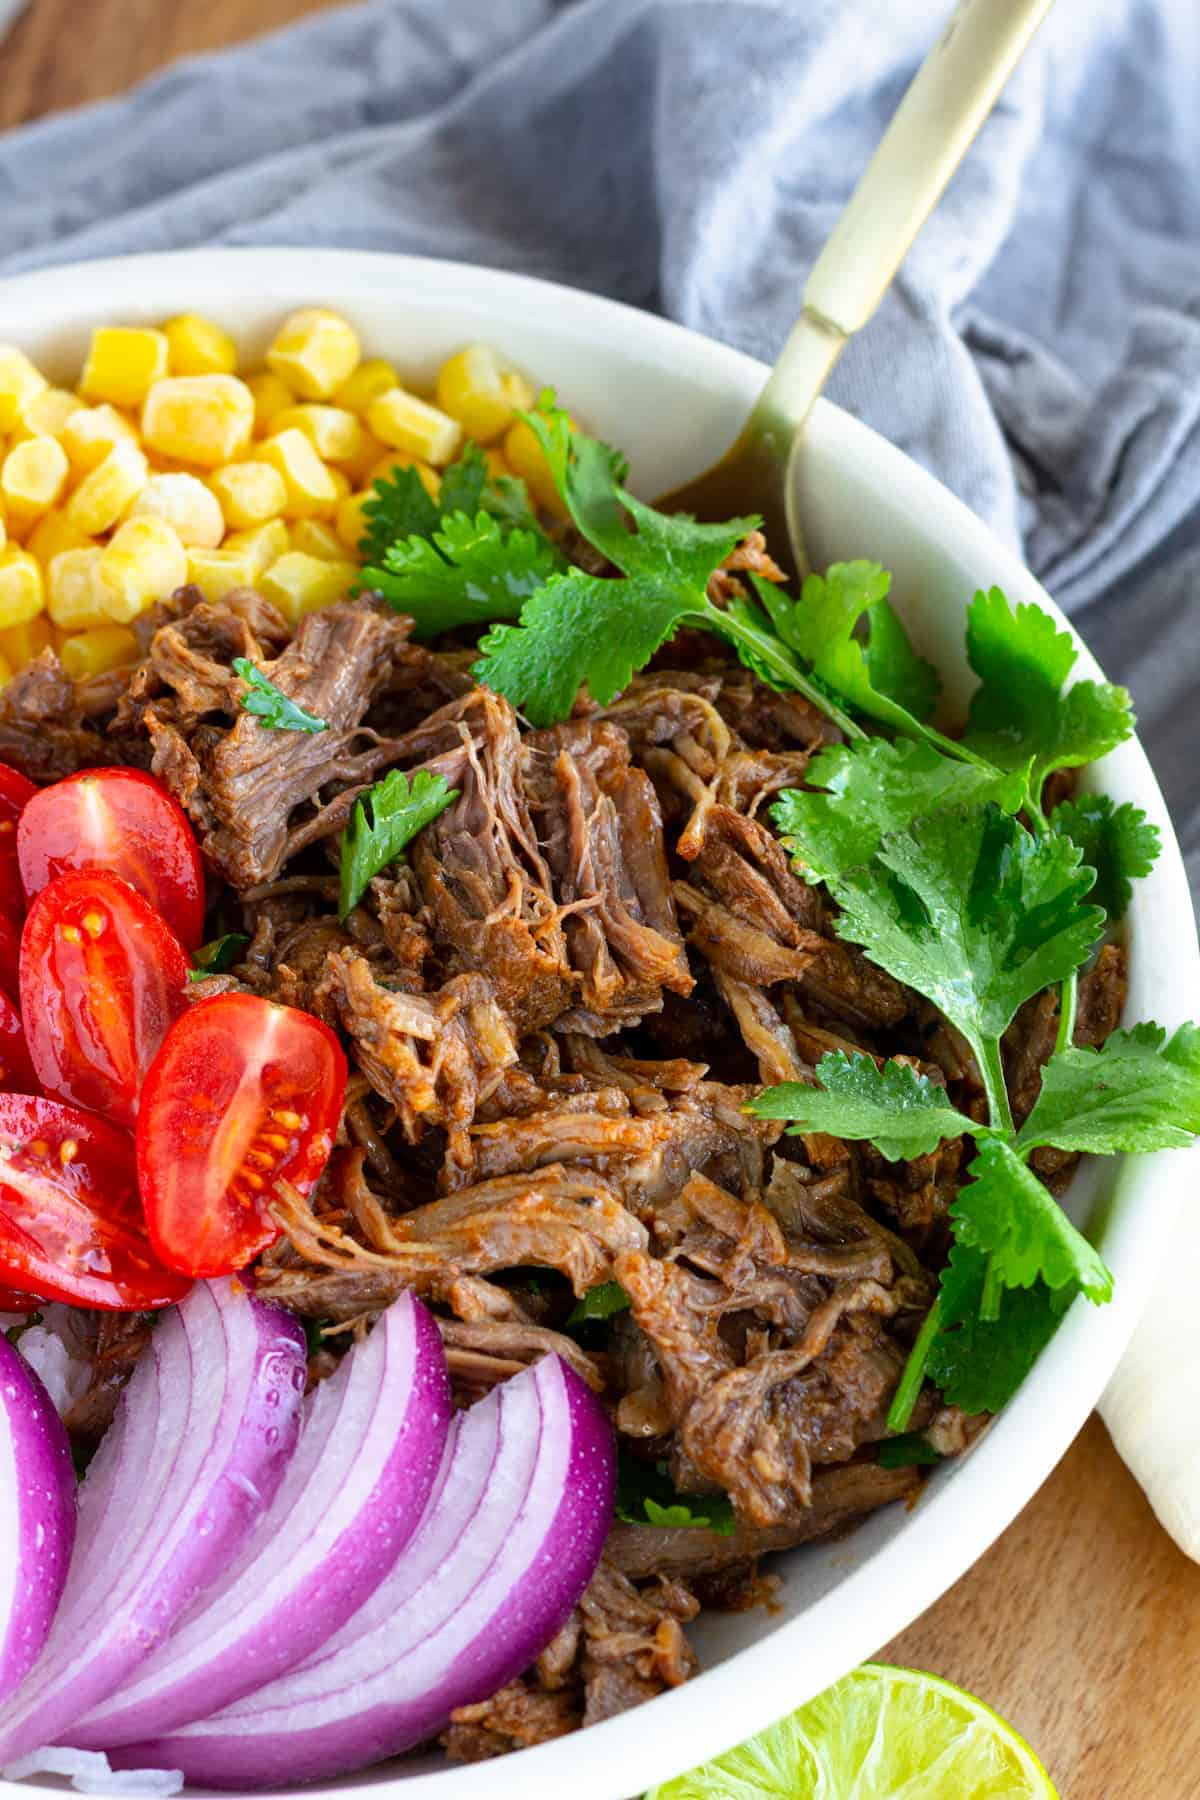 Instant Pot Beef Barbacoa served in a white large bowl with red onions, tomatoes, corn, and a garnish of cilantro